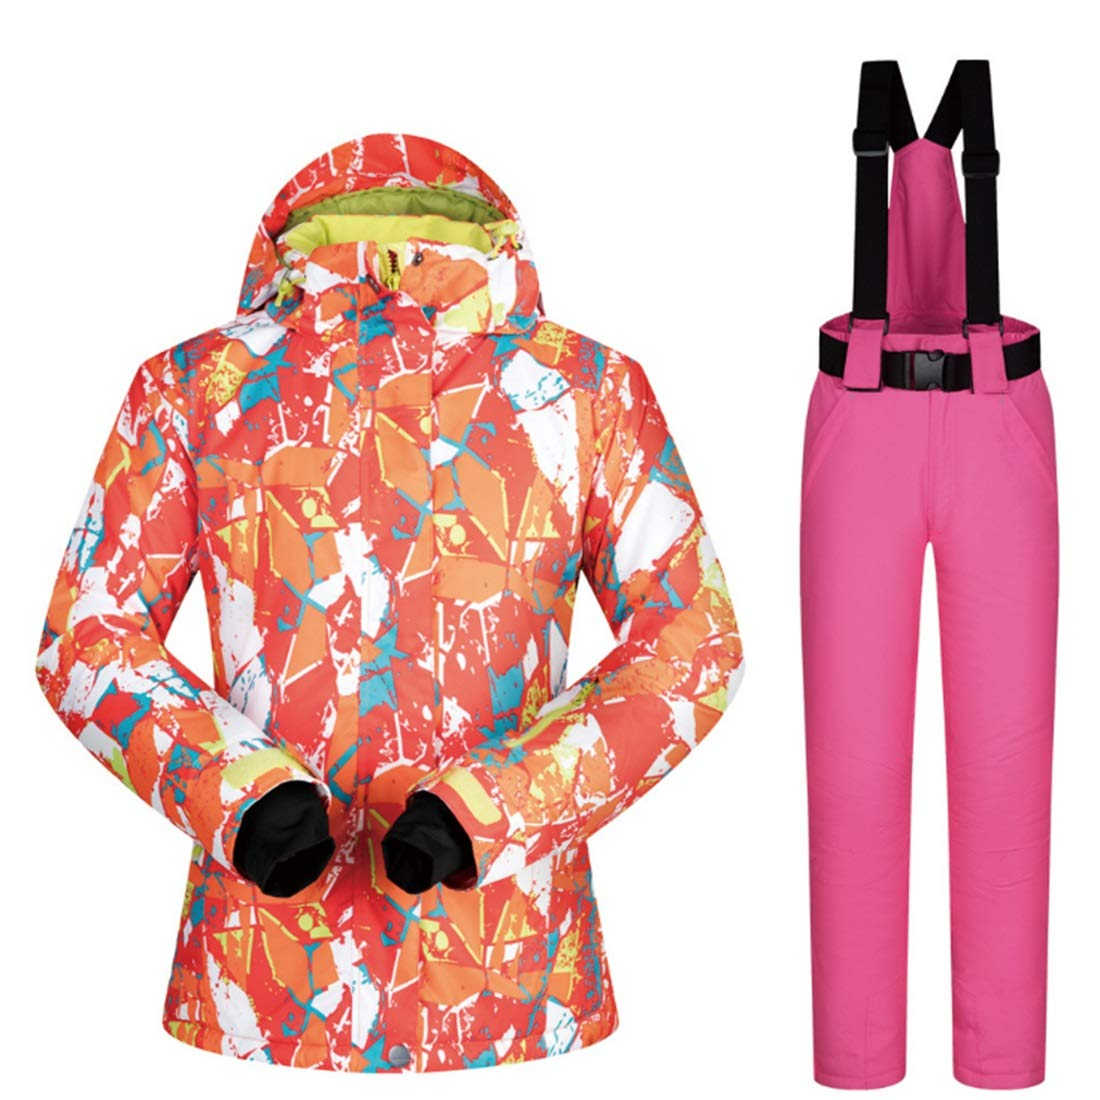 6 Sububblepper Women's Snowsuit Winter Ski Jacket and Pants Set Below Zero Coat (color   03, Size   XL)